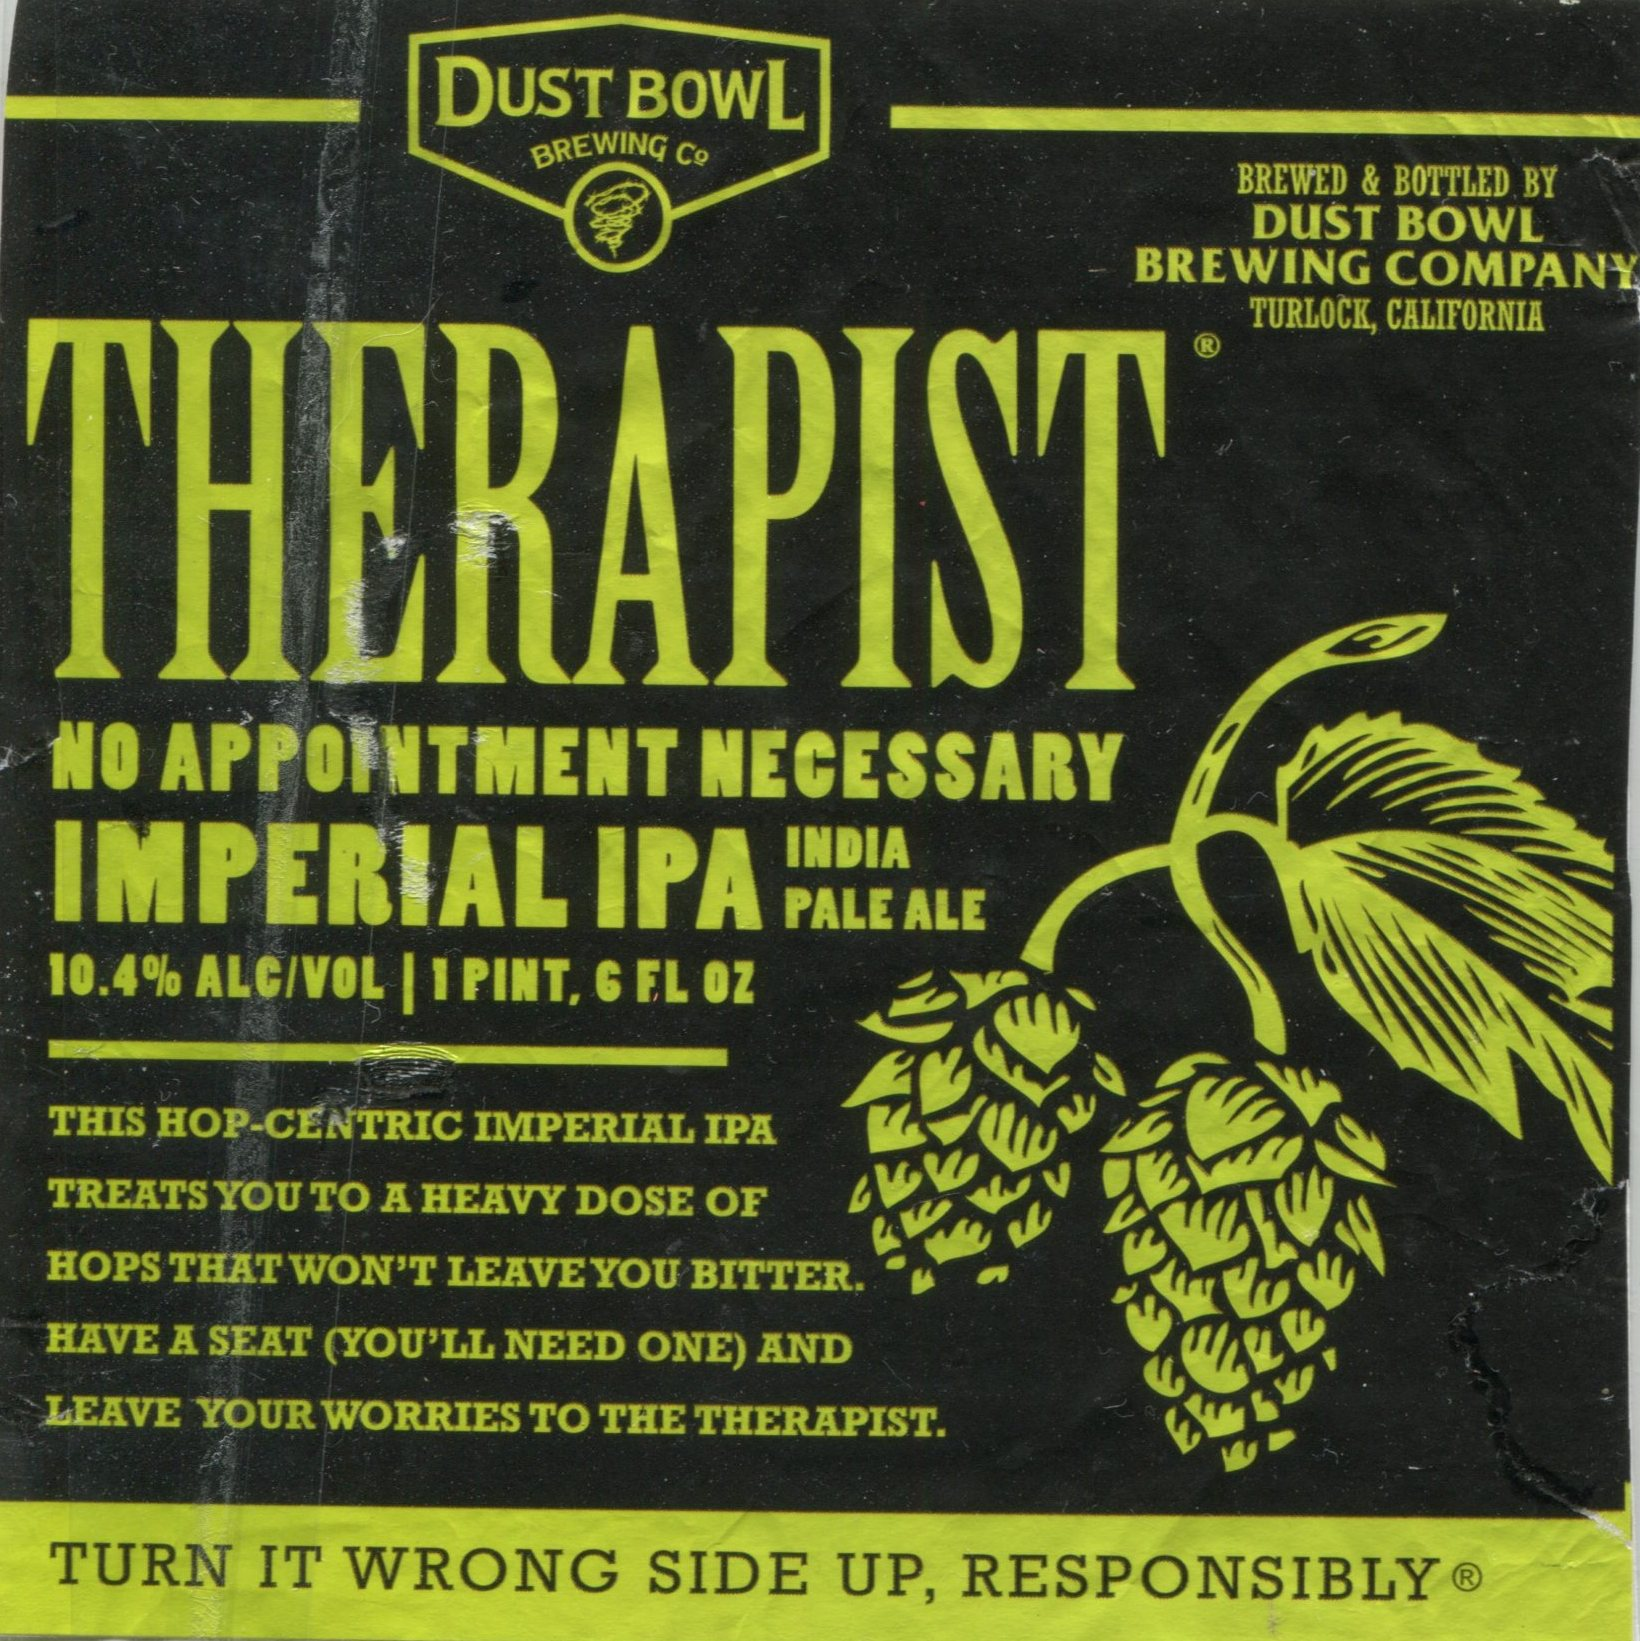 """A label for a product i couldn't resist buying because of the copy. It says: """"Therapist ale. No appointment necessary. this hop-centric imperial ipa treats you to a heavy dose of hops that won't leave you bitter. have a seat (you'll need one) and leave your worries to the therapist."""" (and yes, I did drink it.)"""